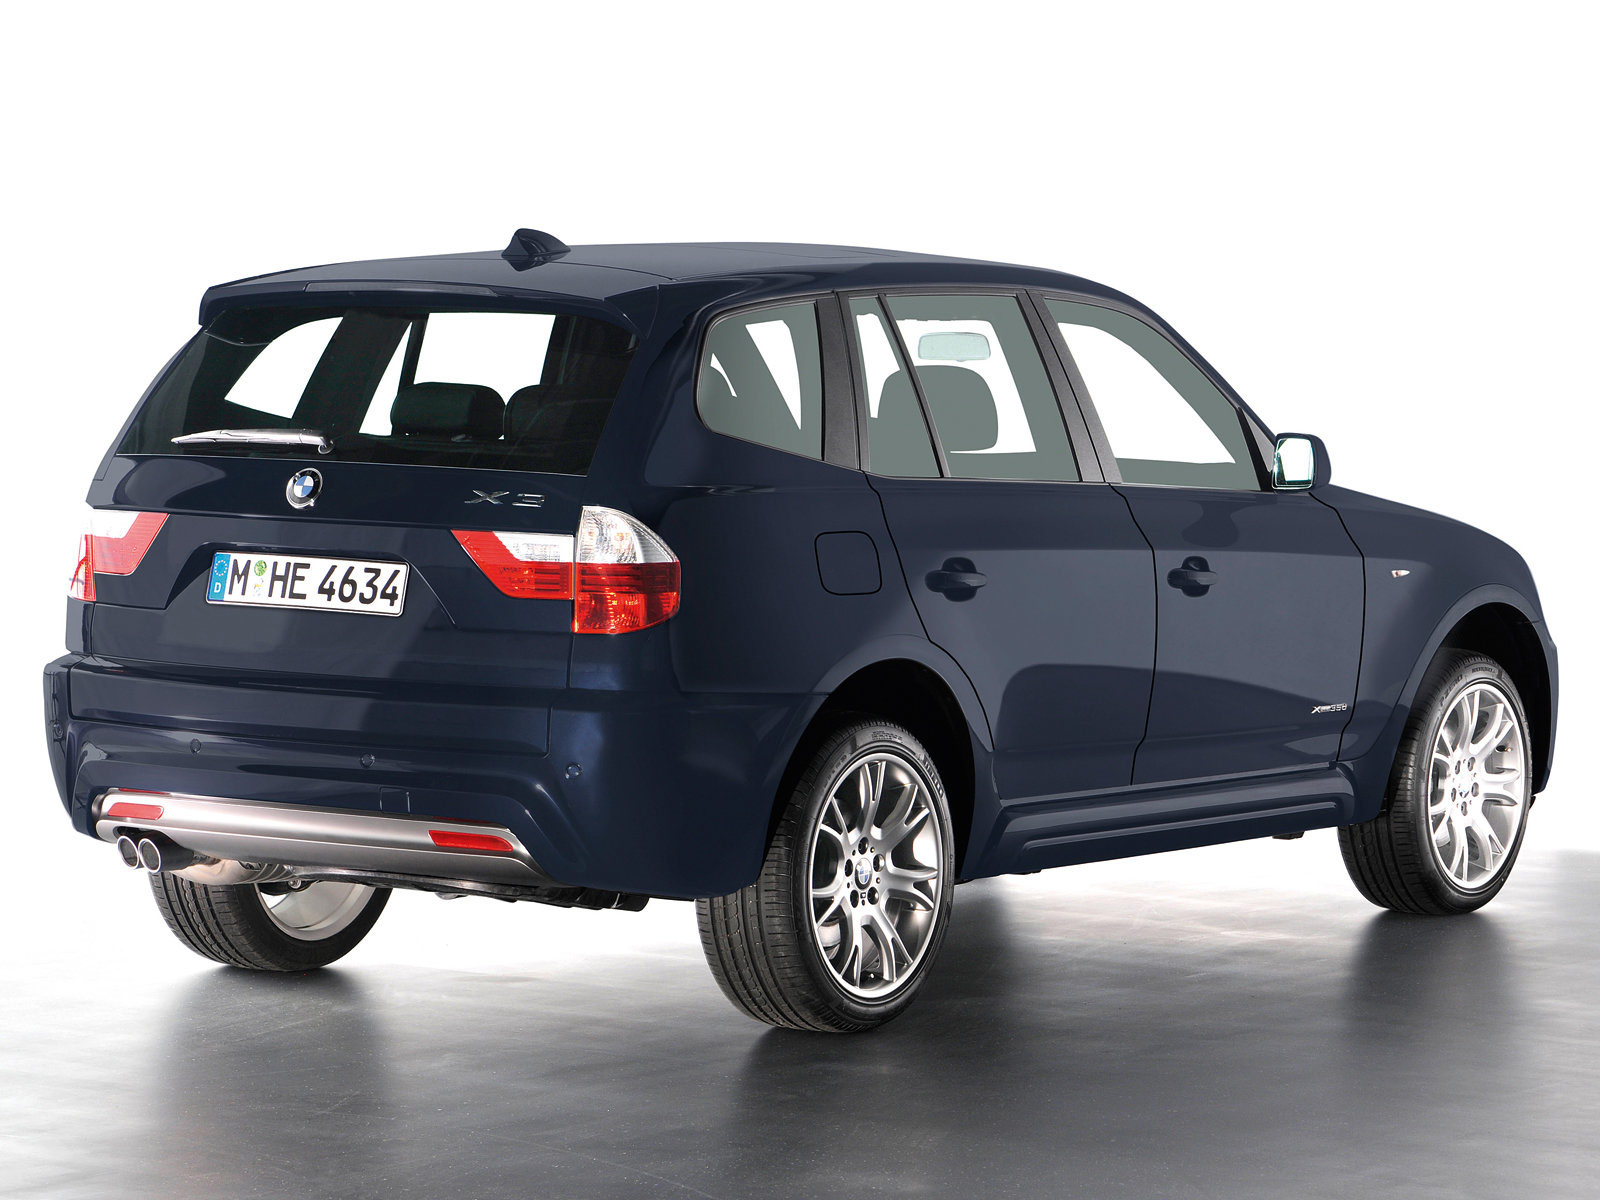 mobil bmw x3 limited sport edition 2009 gambar mobil bmw. Black Bedroom Furniture Sets. Home Design Ideas